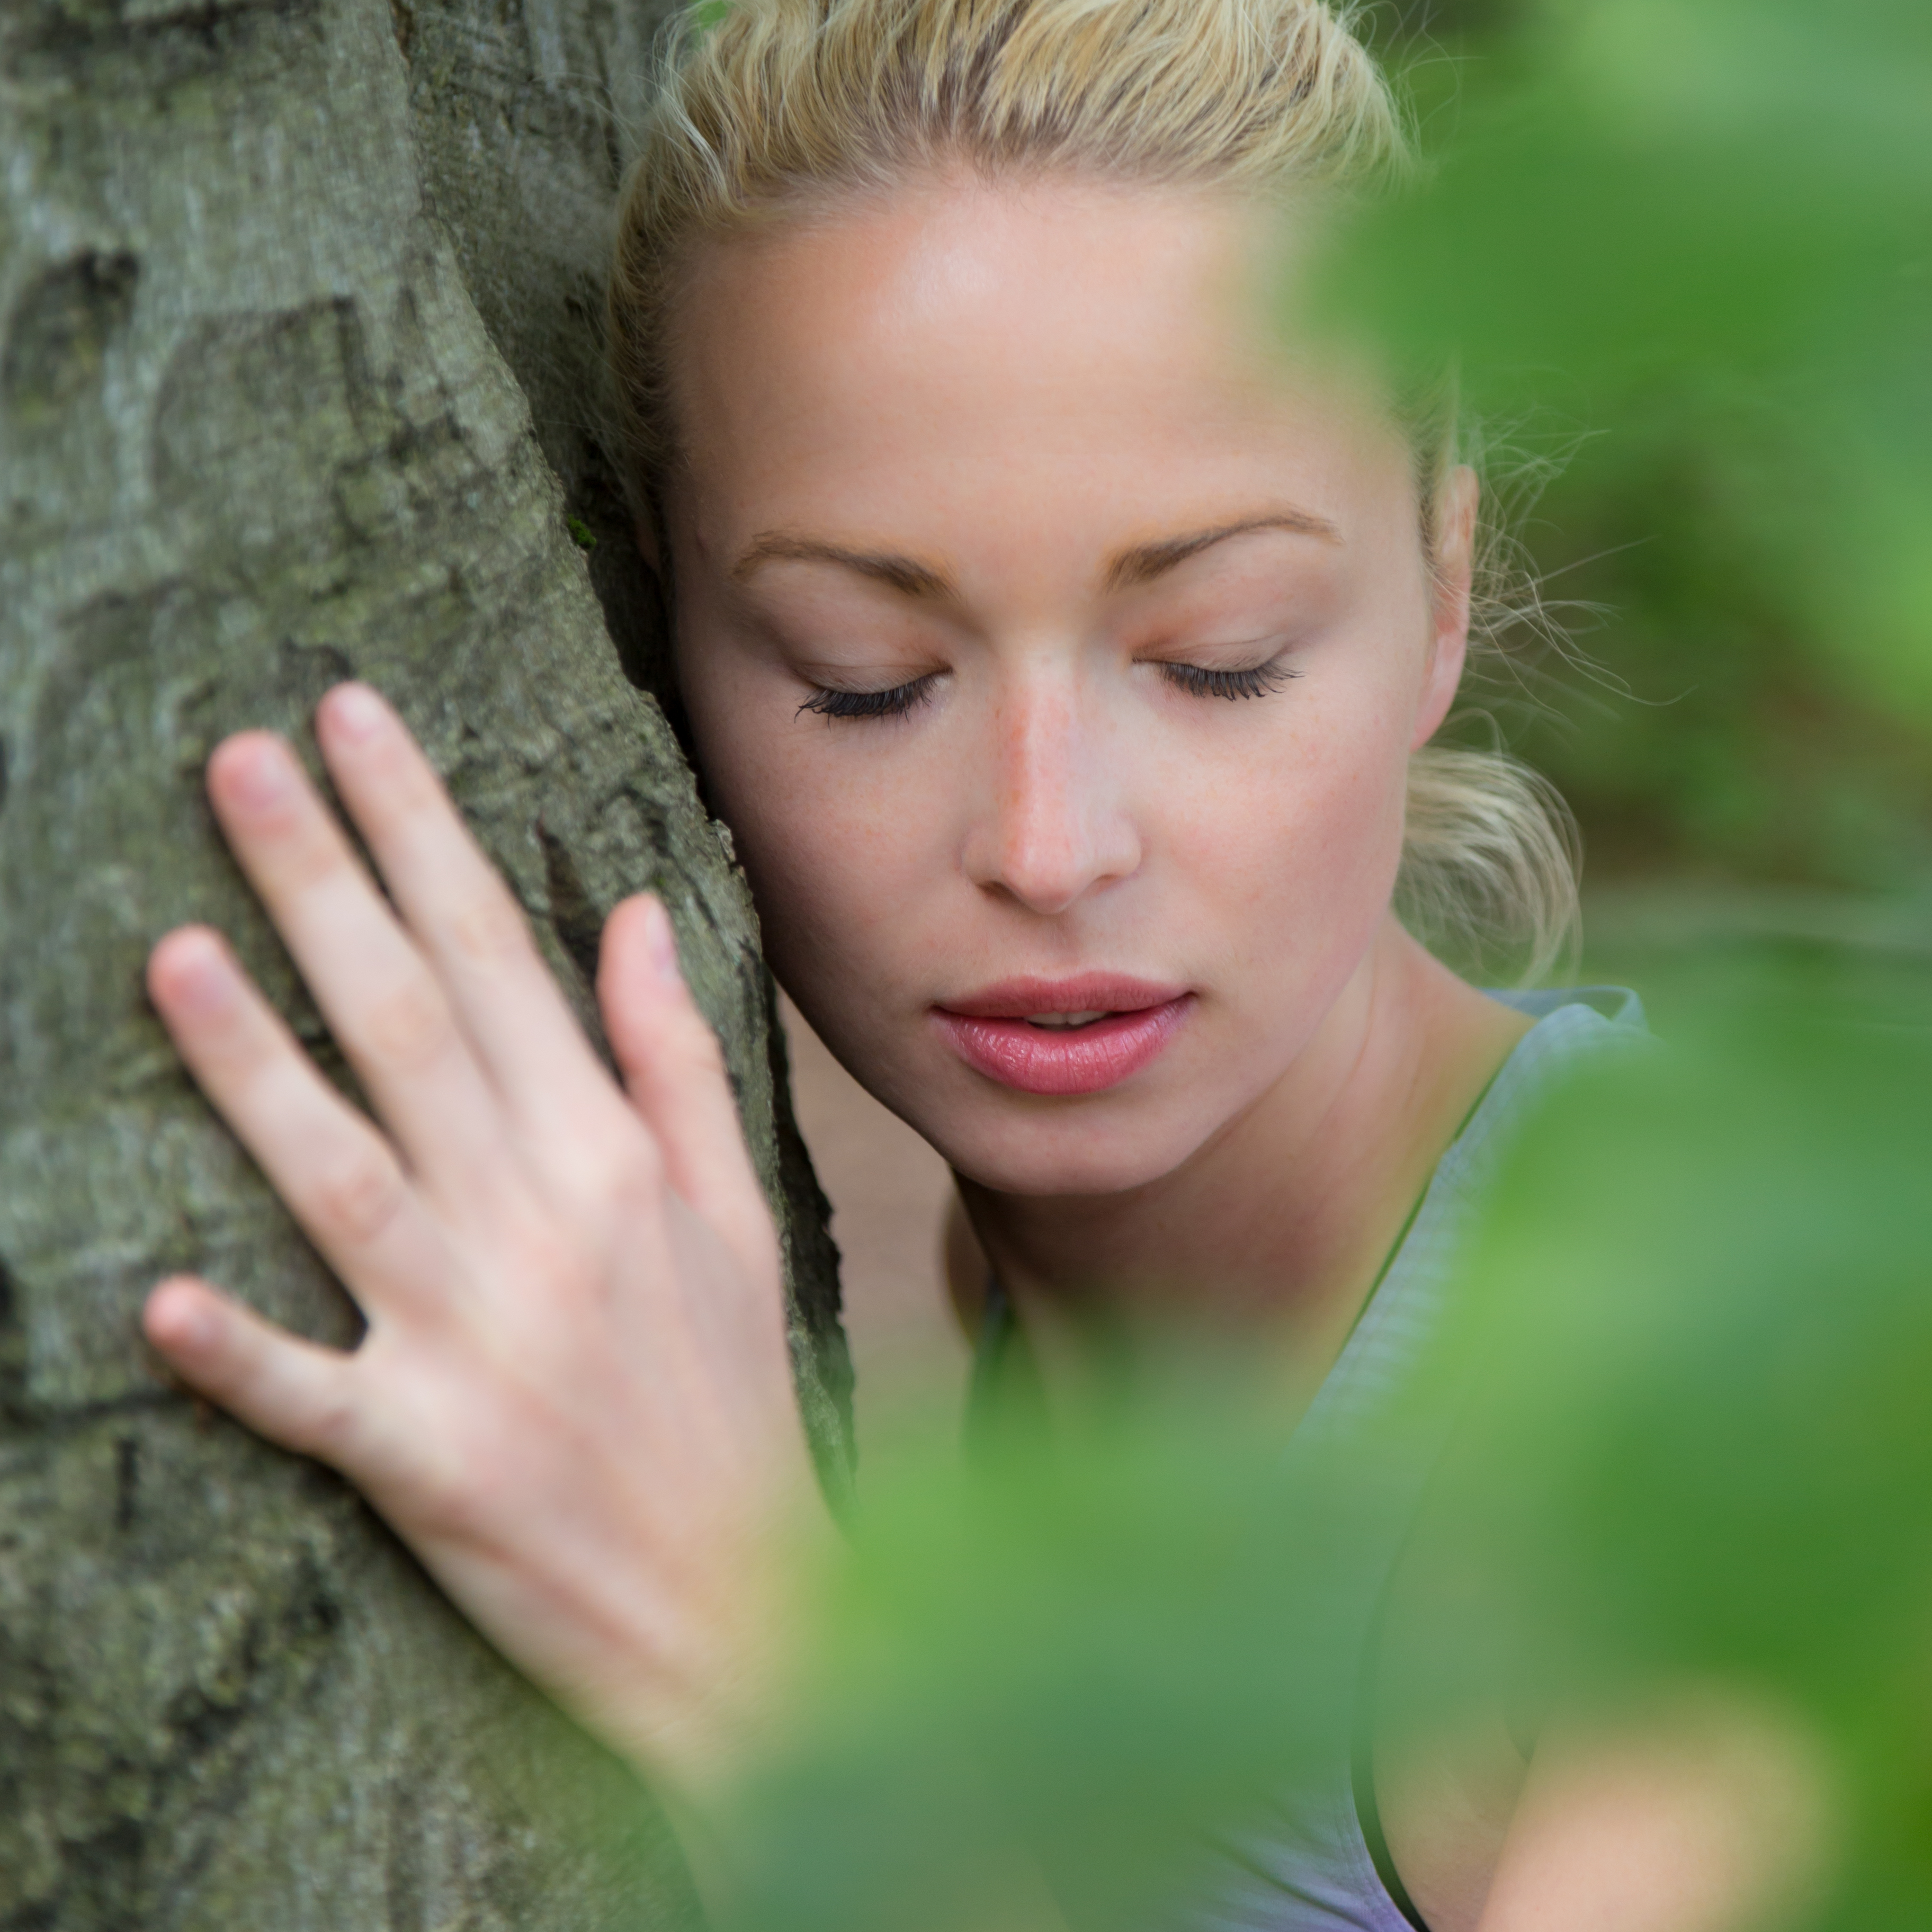 Woman listening with her ear agains a tree